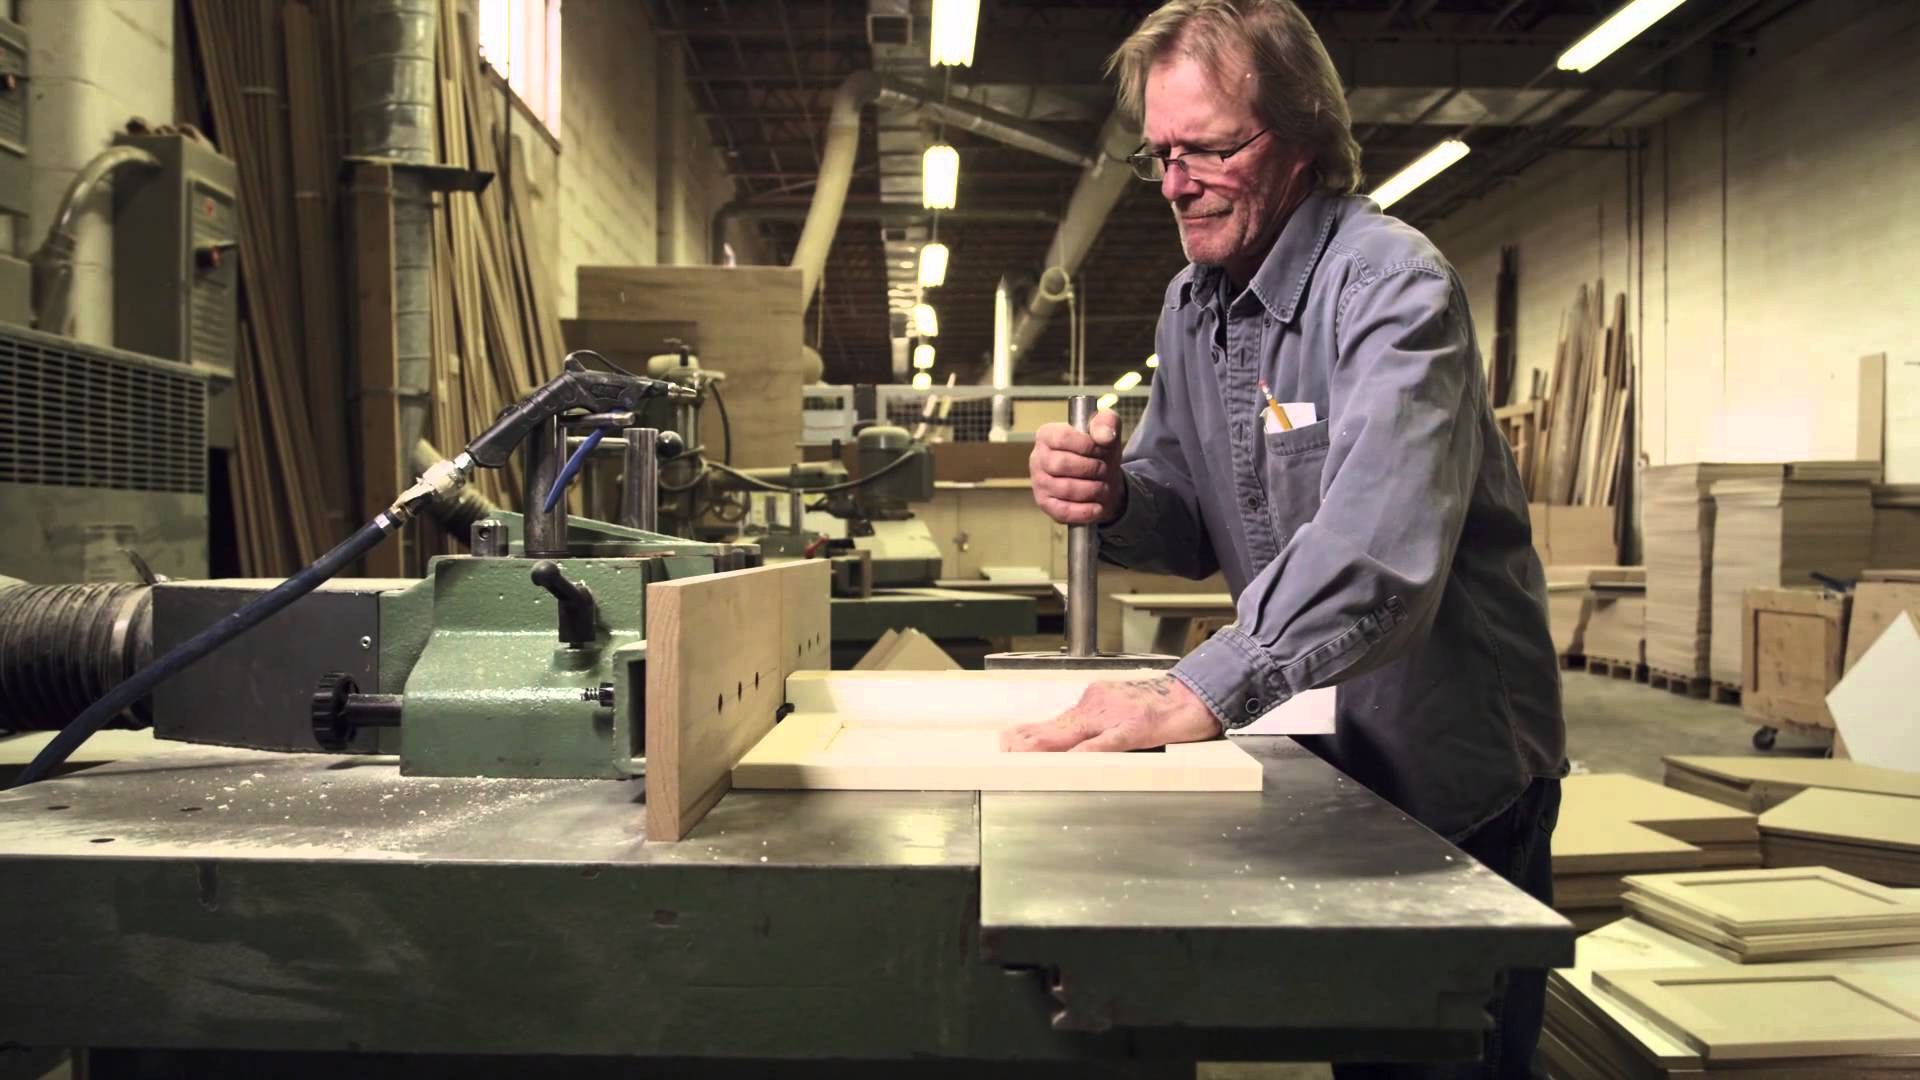 Cabinet maker apply for this job in redding ca for Cabinet makers